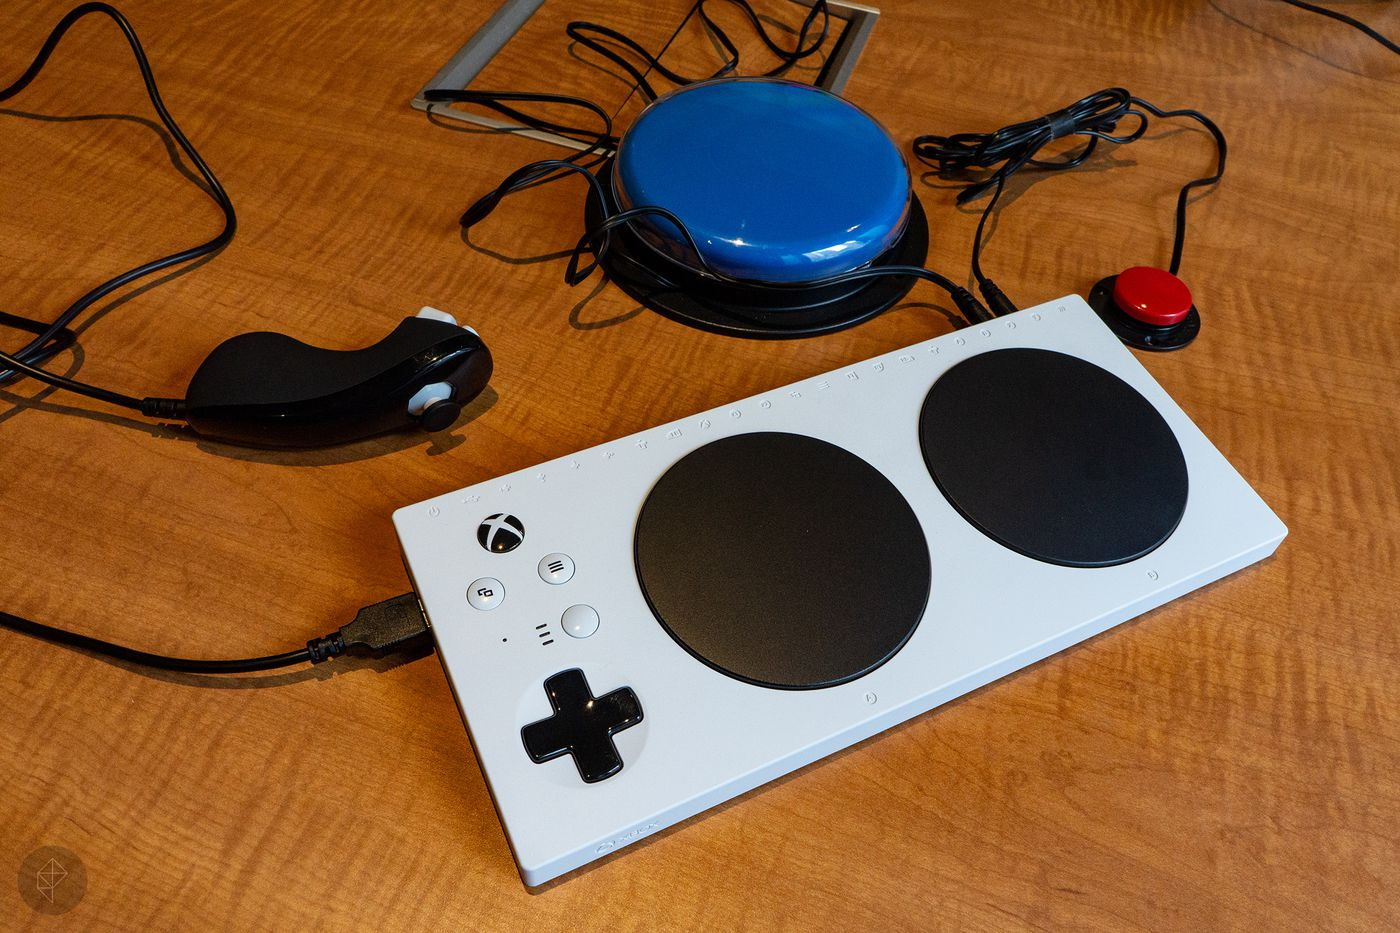 Microsoft reveals Xbox Adaptive Controller for players with